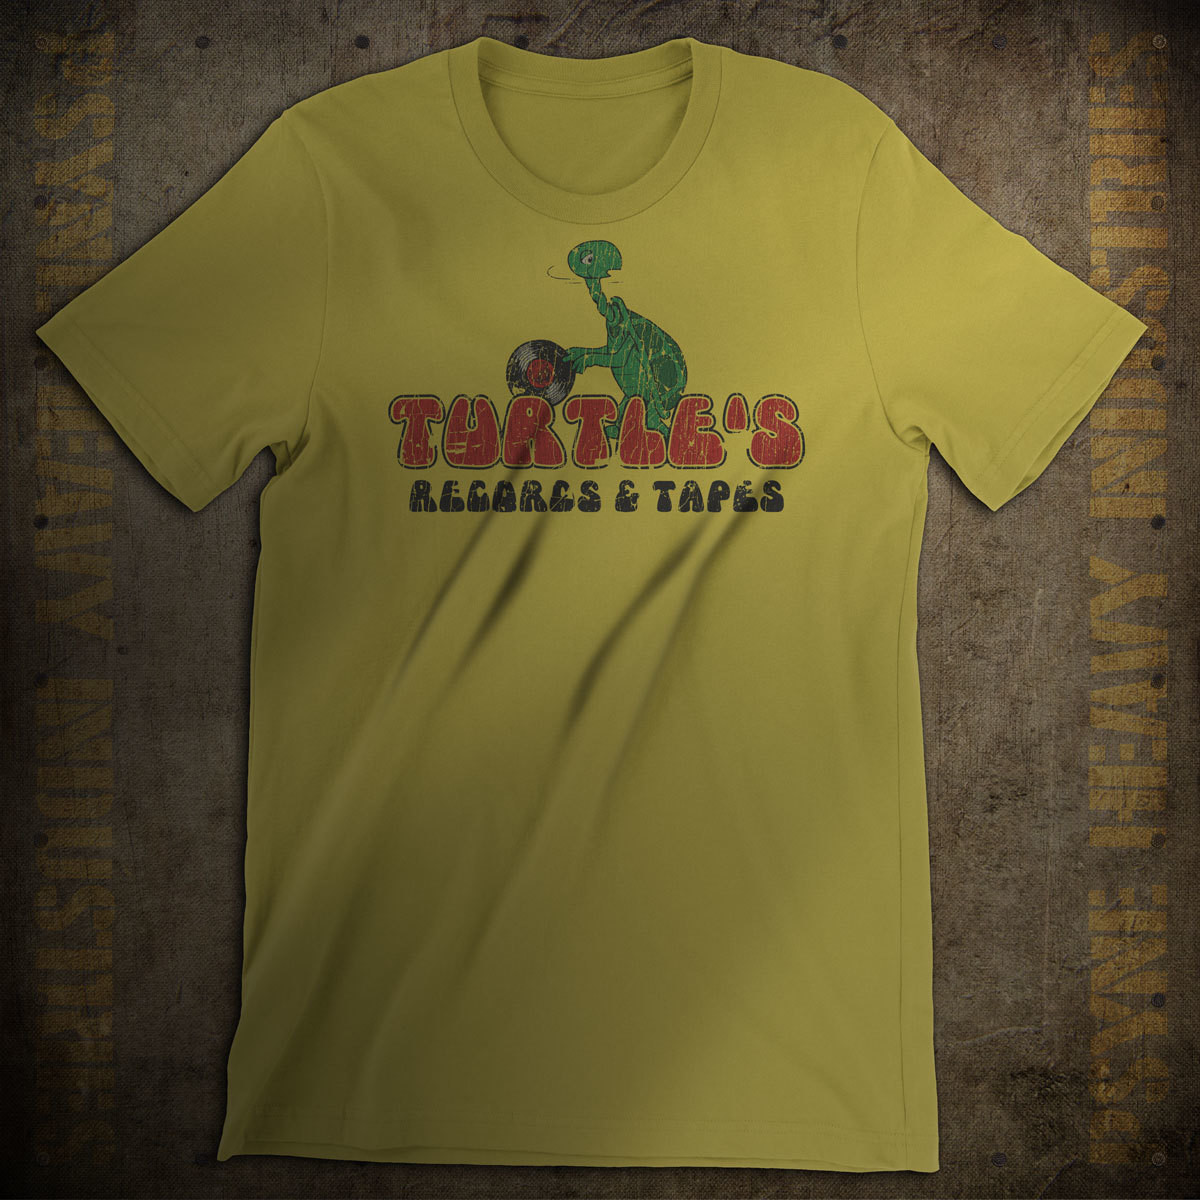 Turtle's Records & Tapes Vintage T-Shirt